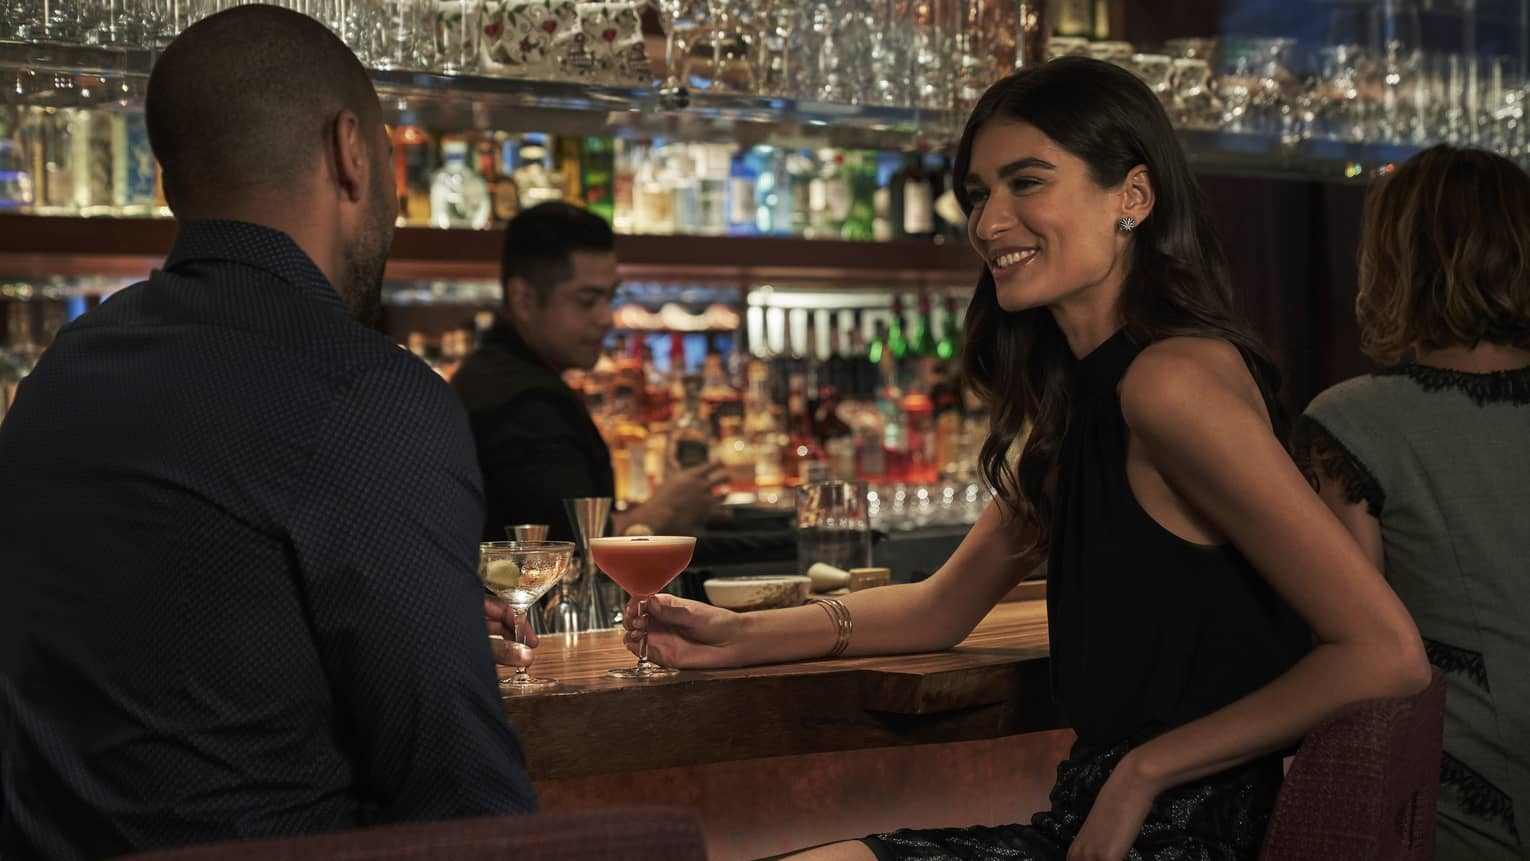 Man and woman with freshly-poured cocktails engage in conversation while sitting at the bar